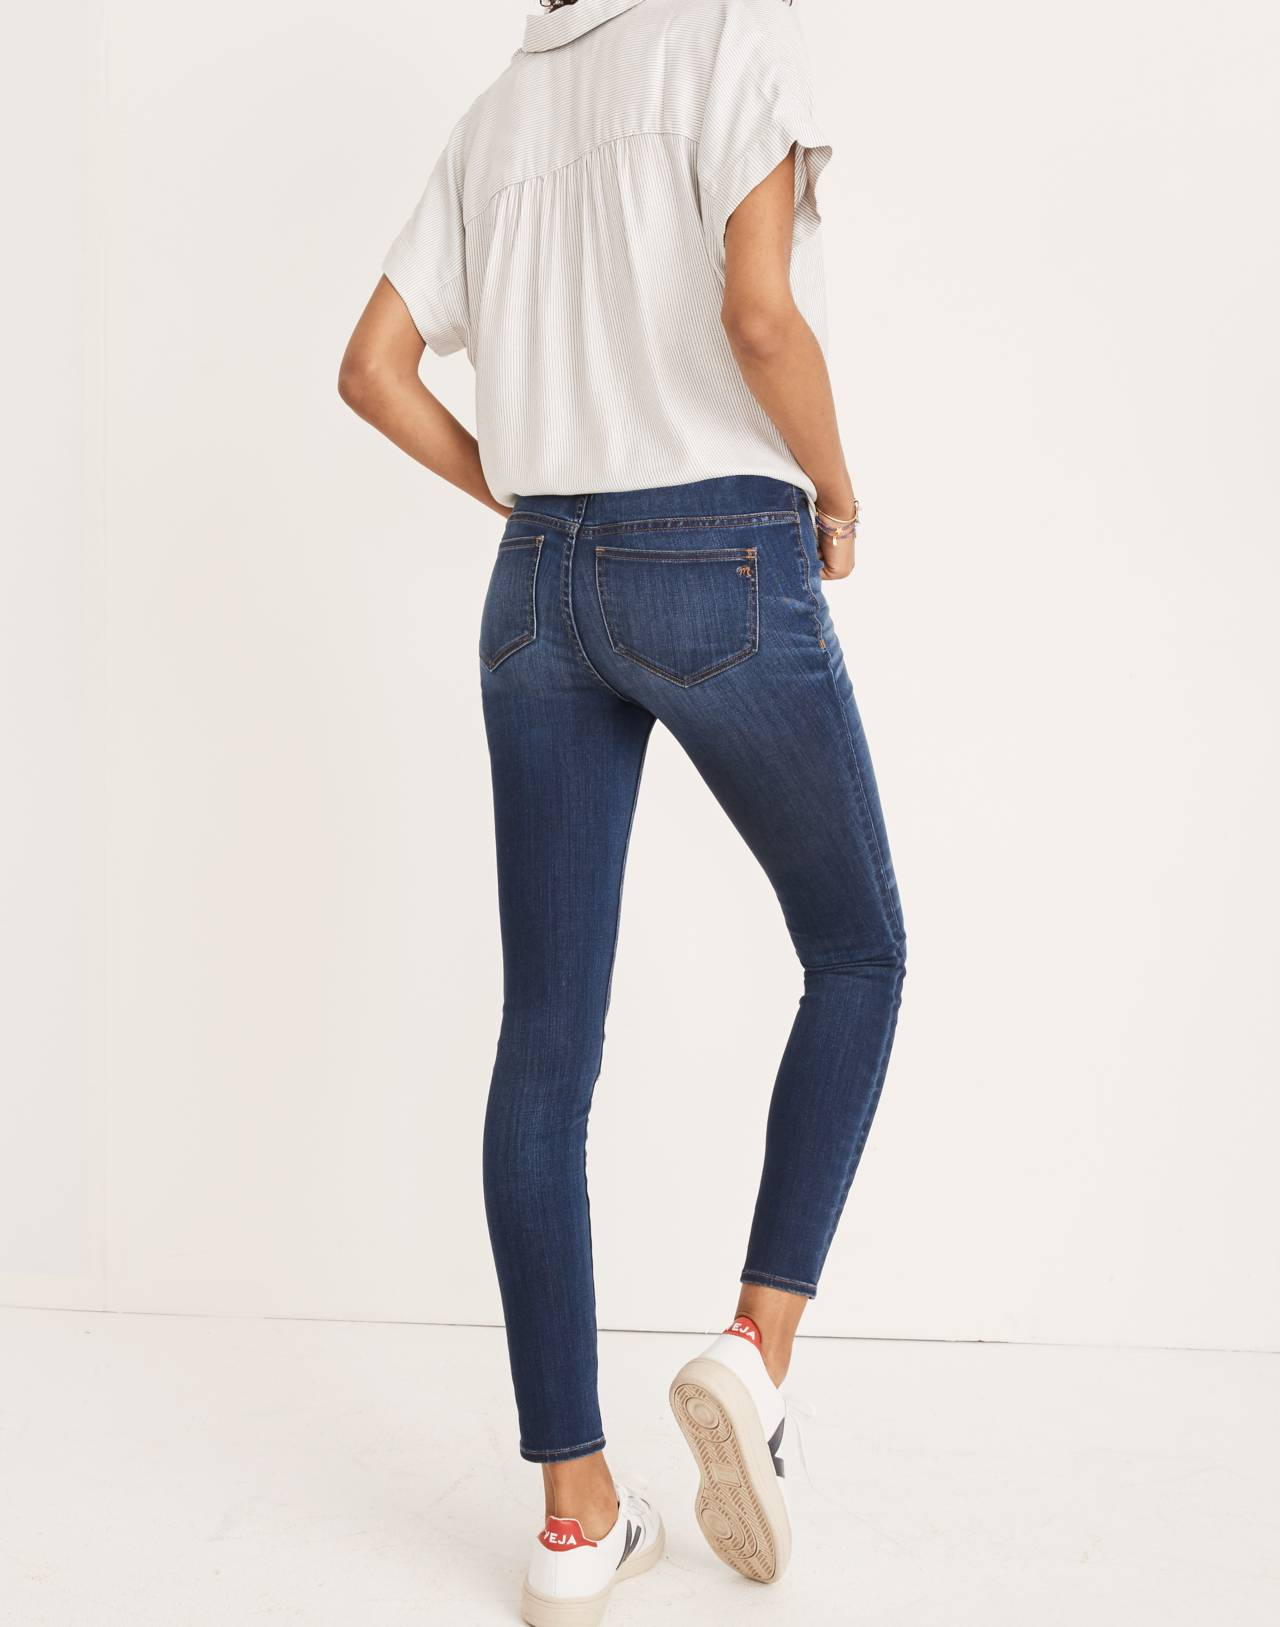 Maternity Over-the-Belly Skinny Jeans in Danny Wash: Tencel™ Edition in danny image 3